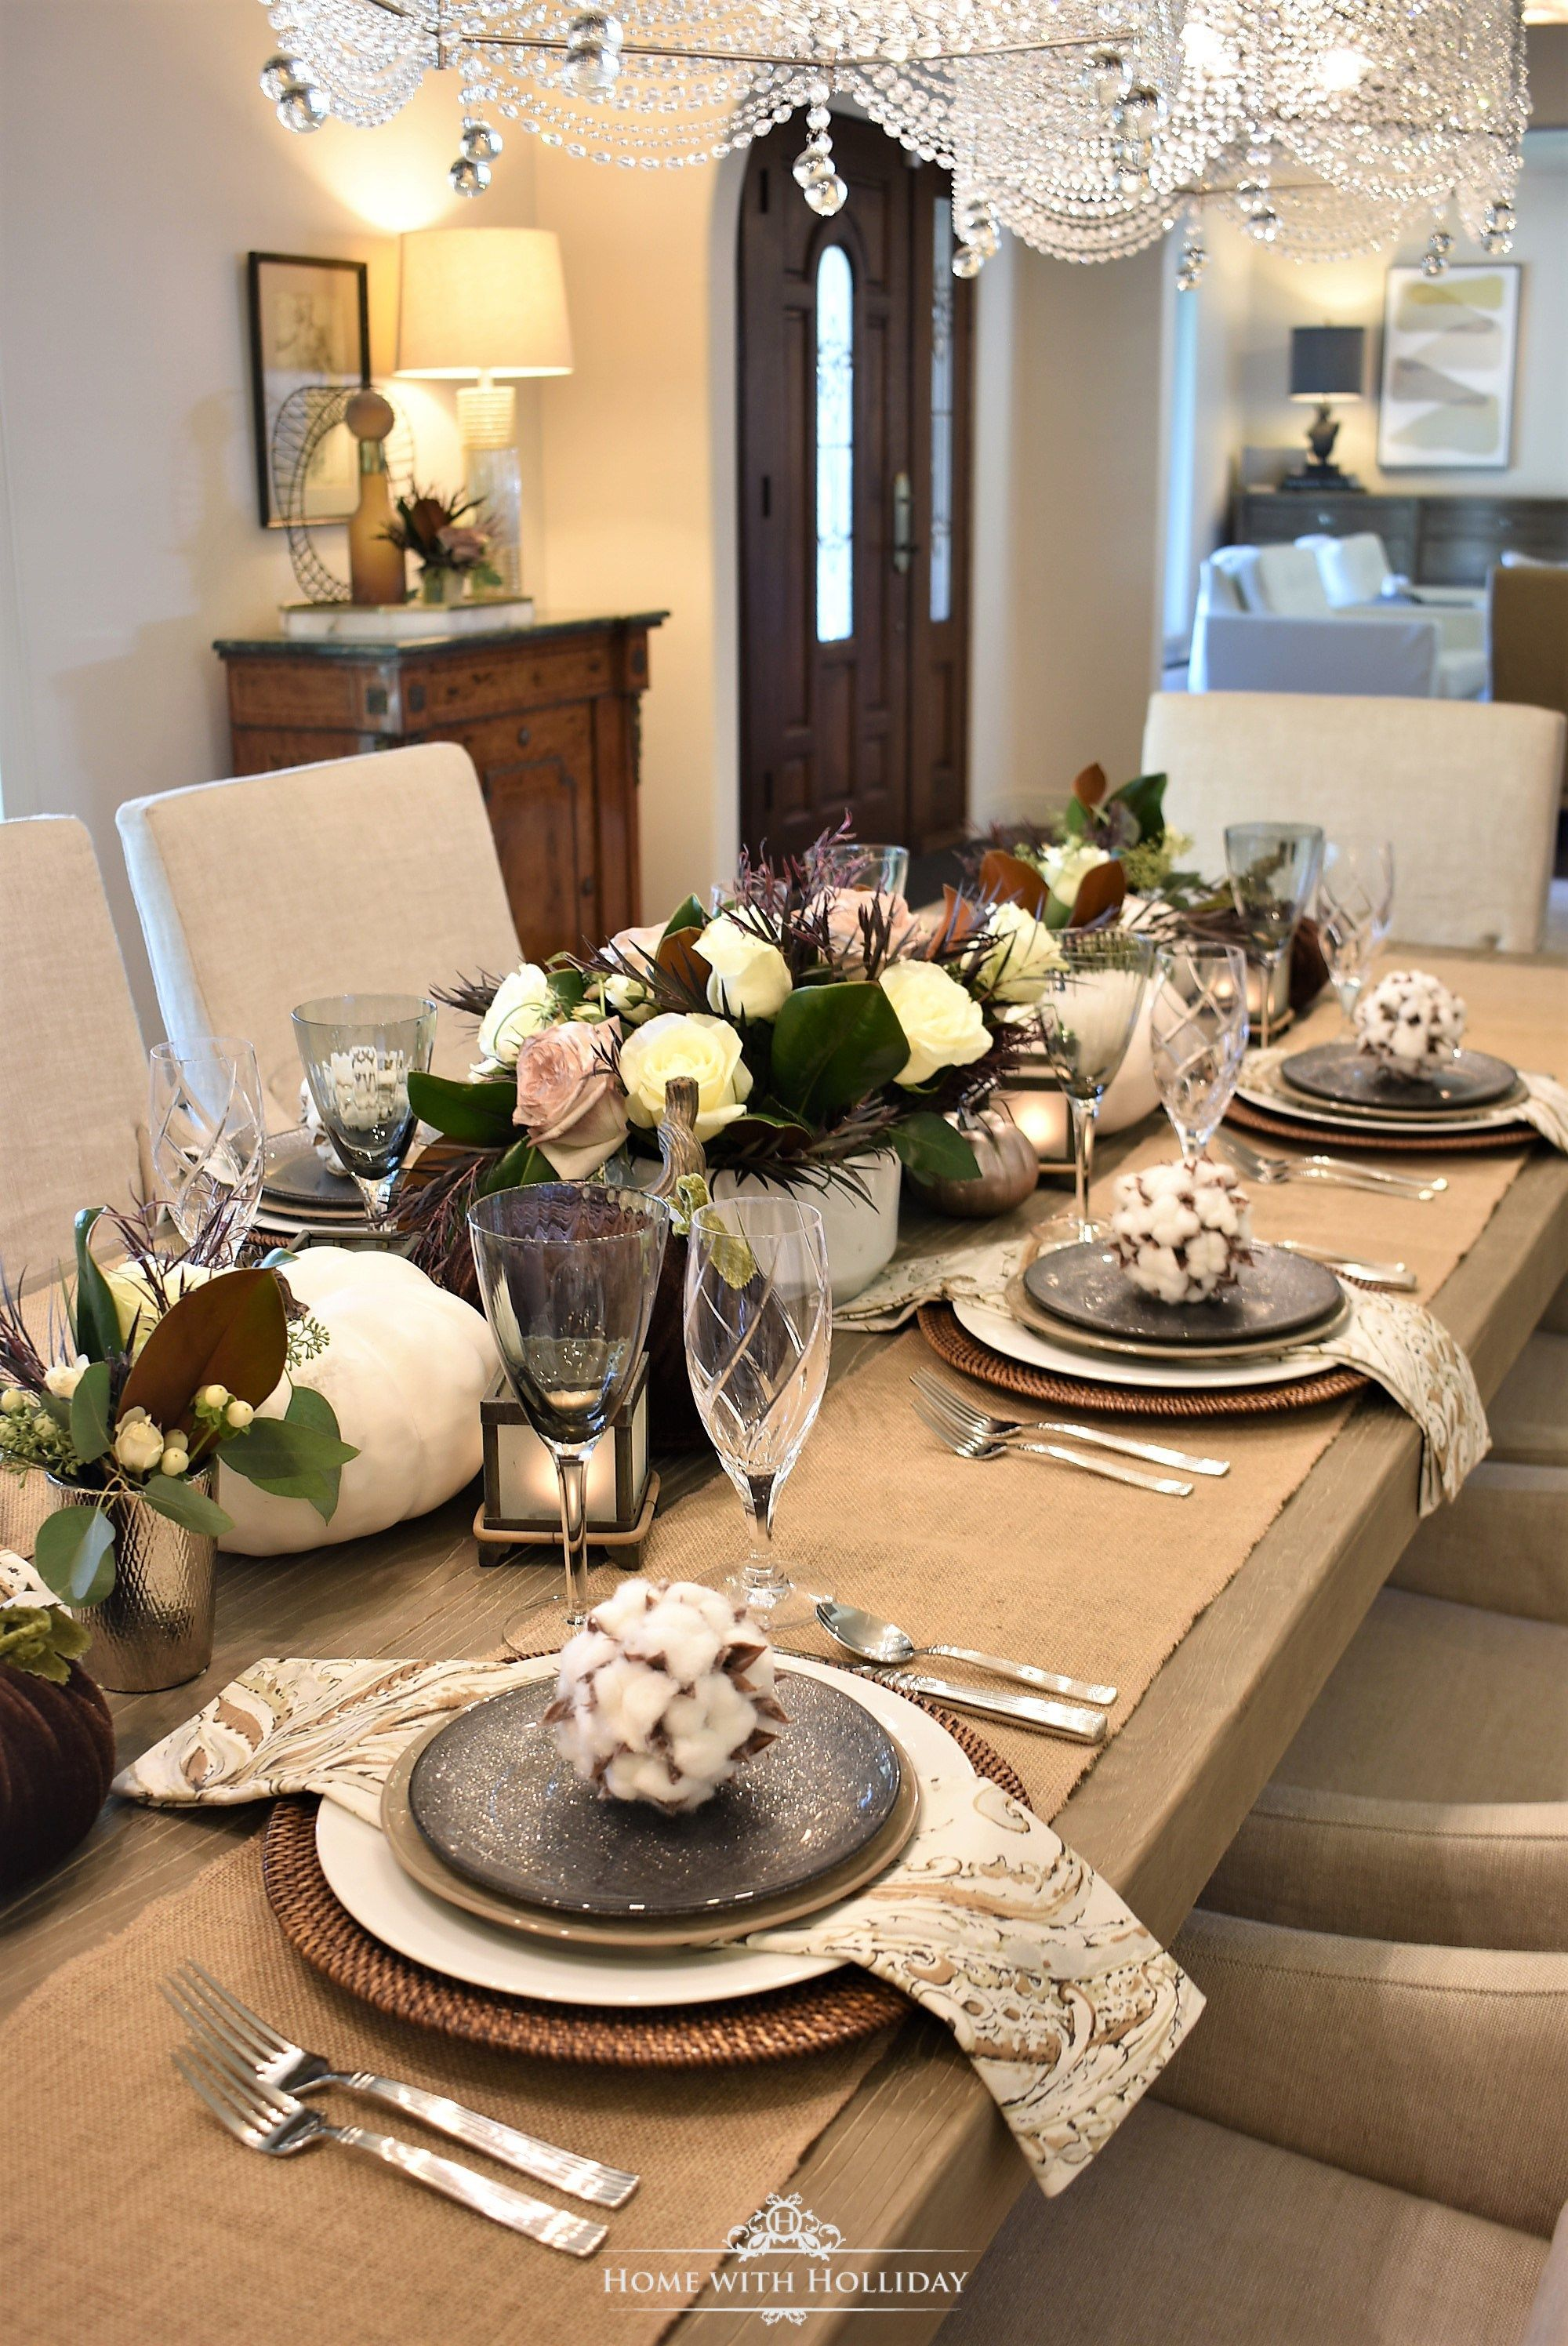 Fall Table Setting With Brown And White Pumpkins Home With Holliday Fall Table Settings Unique Dining Room Table Fall Table